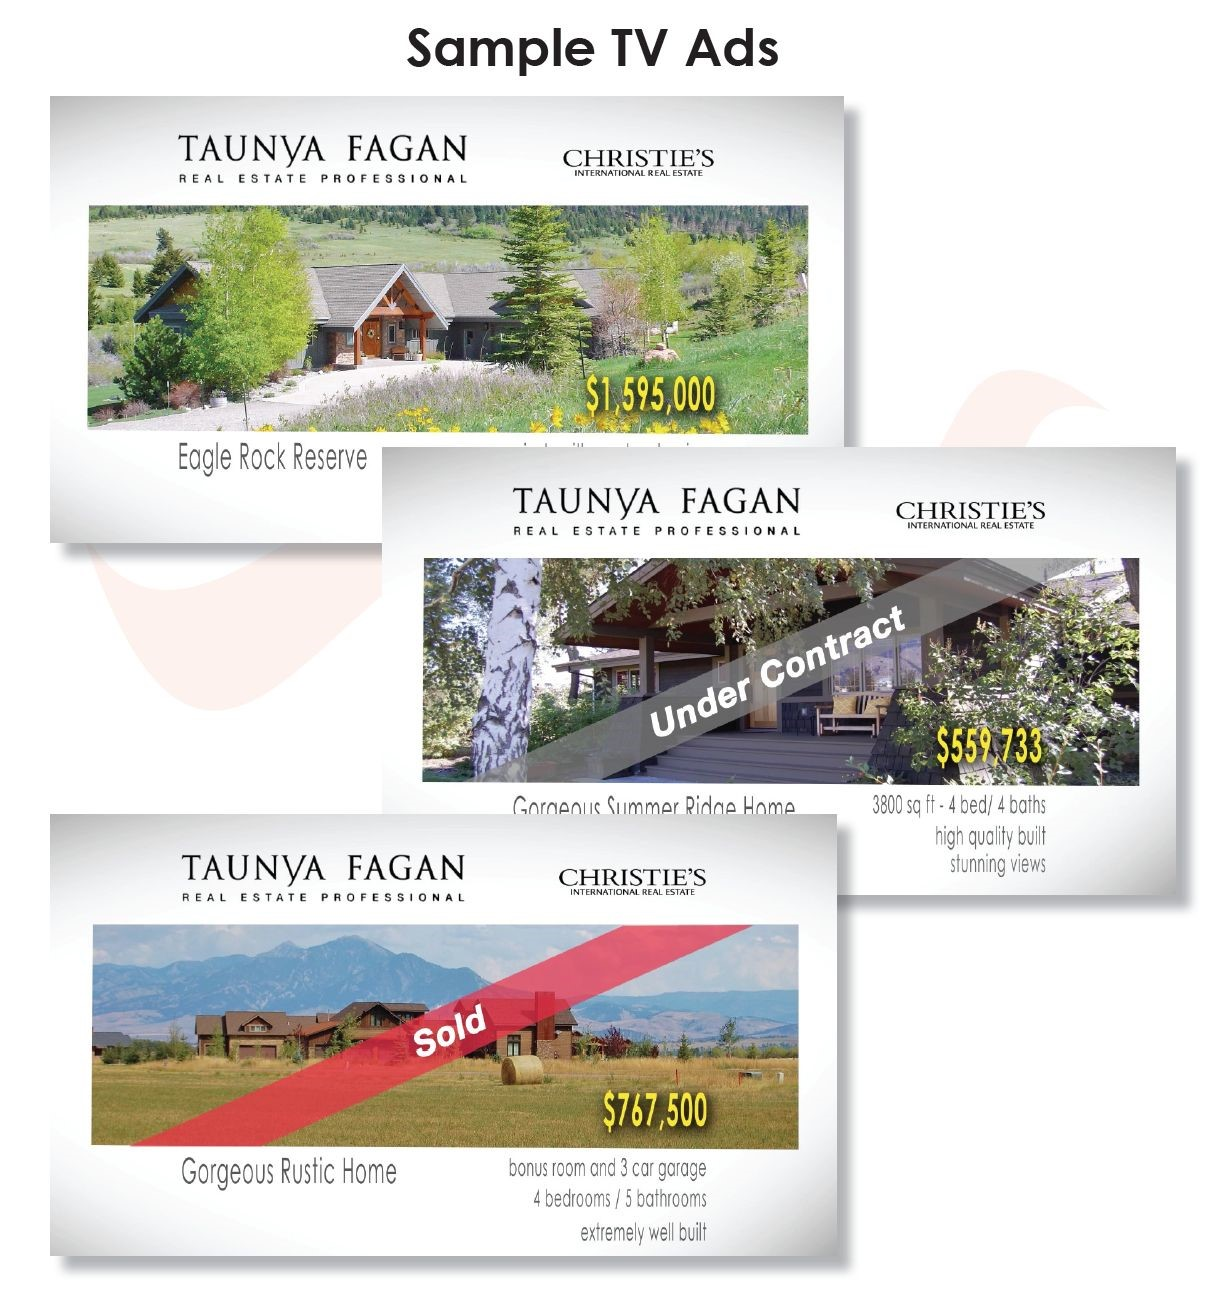 Taunya Fagan Bozeman Real Estate TV Ads, Video Marketing